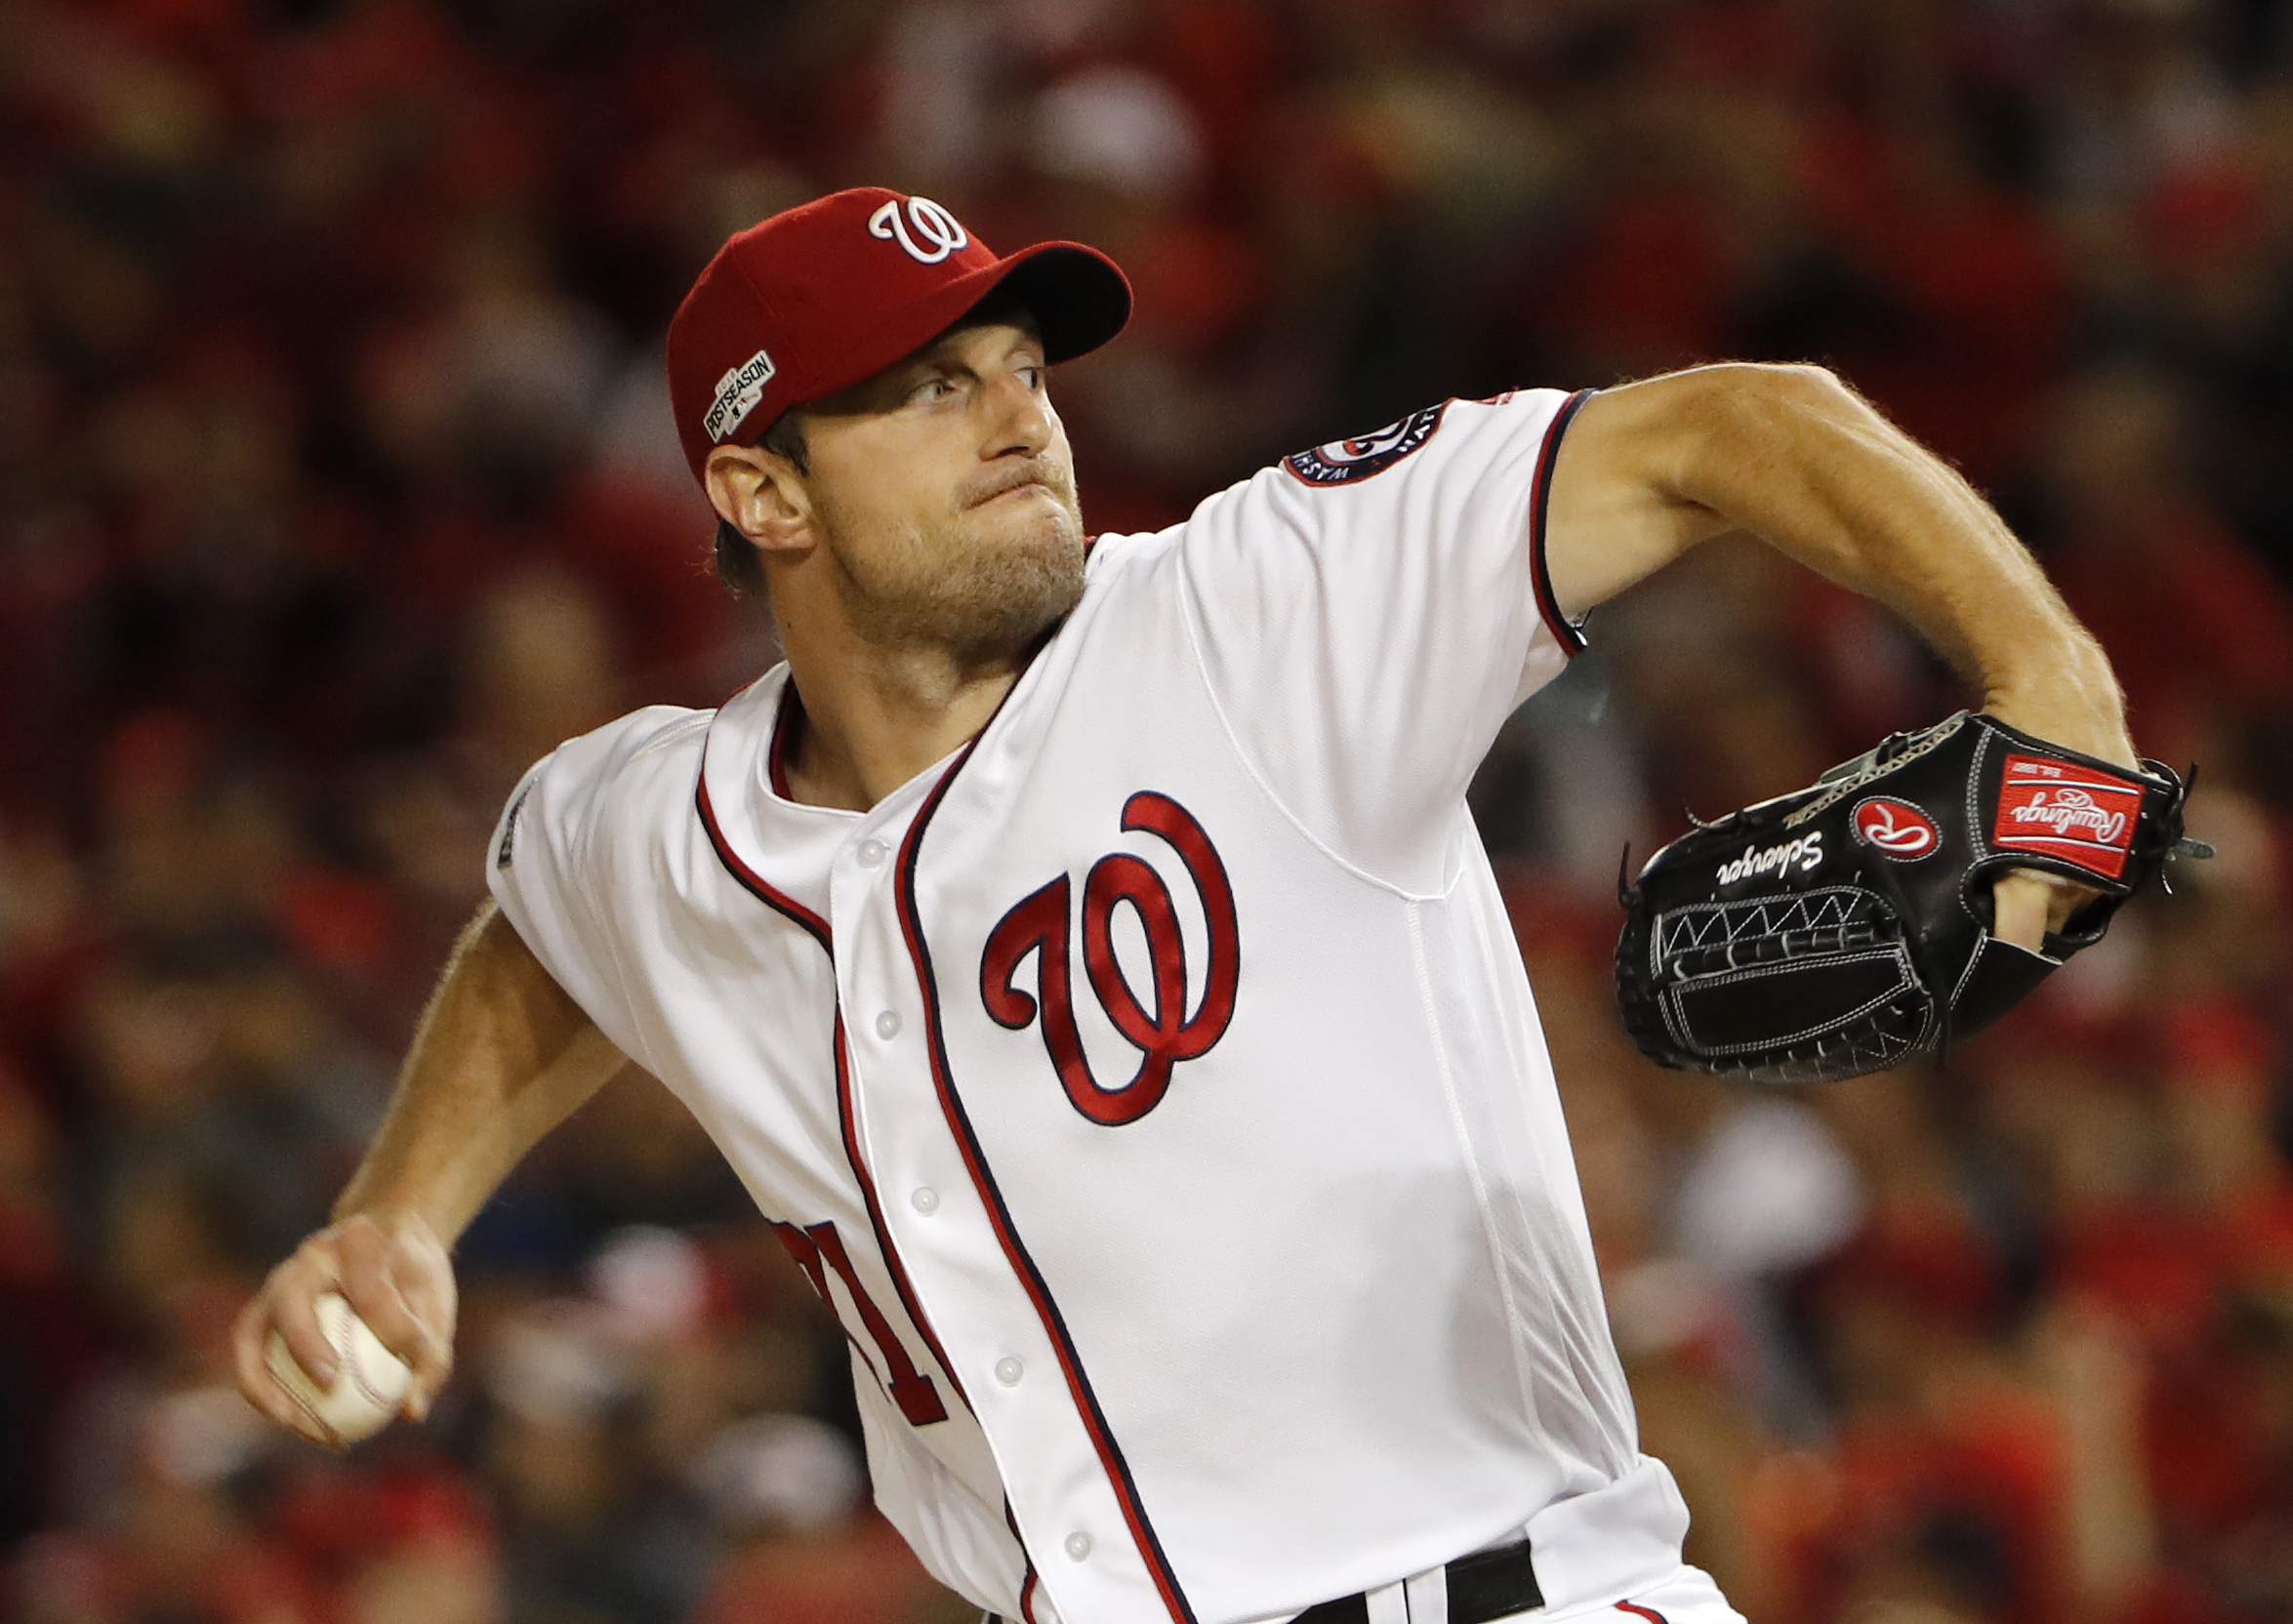 FILE - In this Oct. 13, 2016, file photo, Washington Nationals starting pitcher Max Scherzer winds up during the first inning in Game 5 of baseball's National League Division Series, against the Los Angeles Dodgers, in Washington. Scherzer, Kyle Hendricks